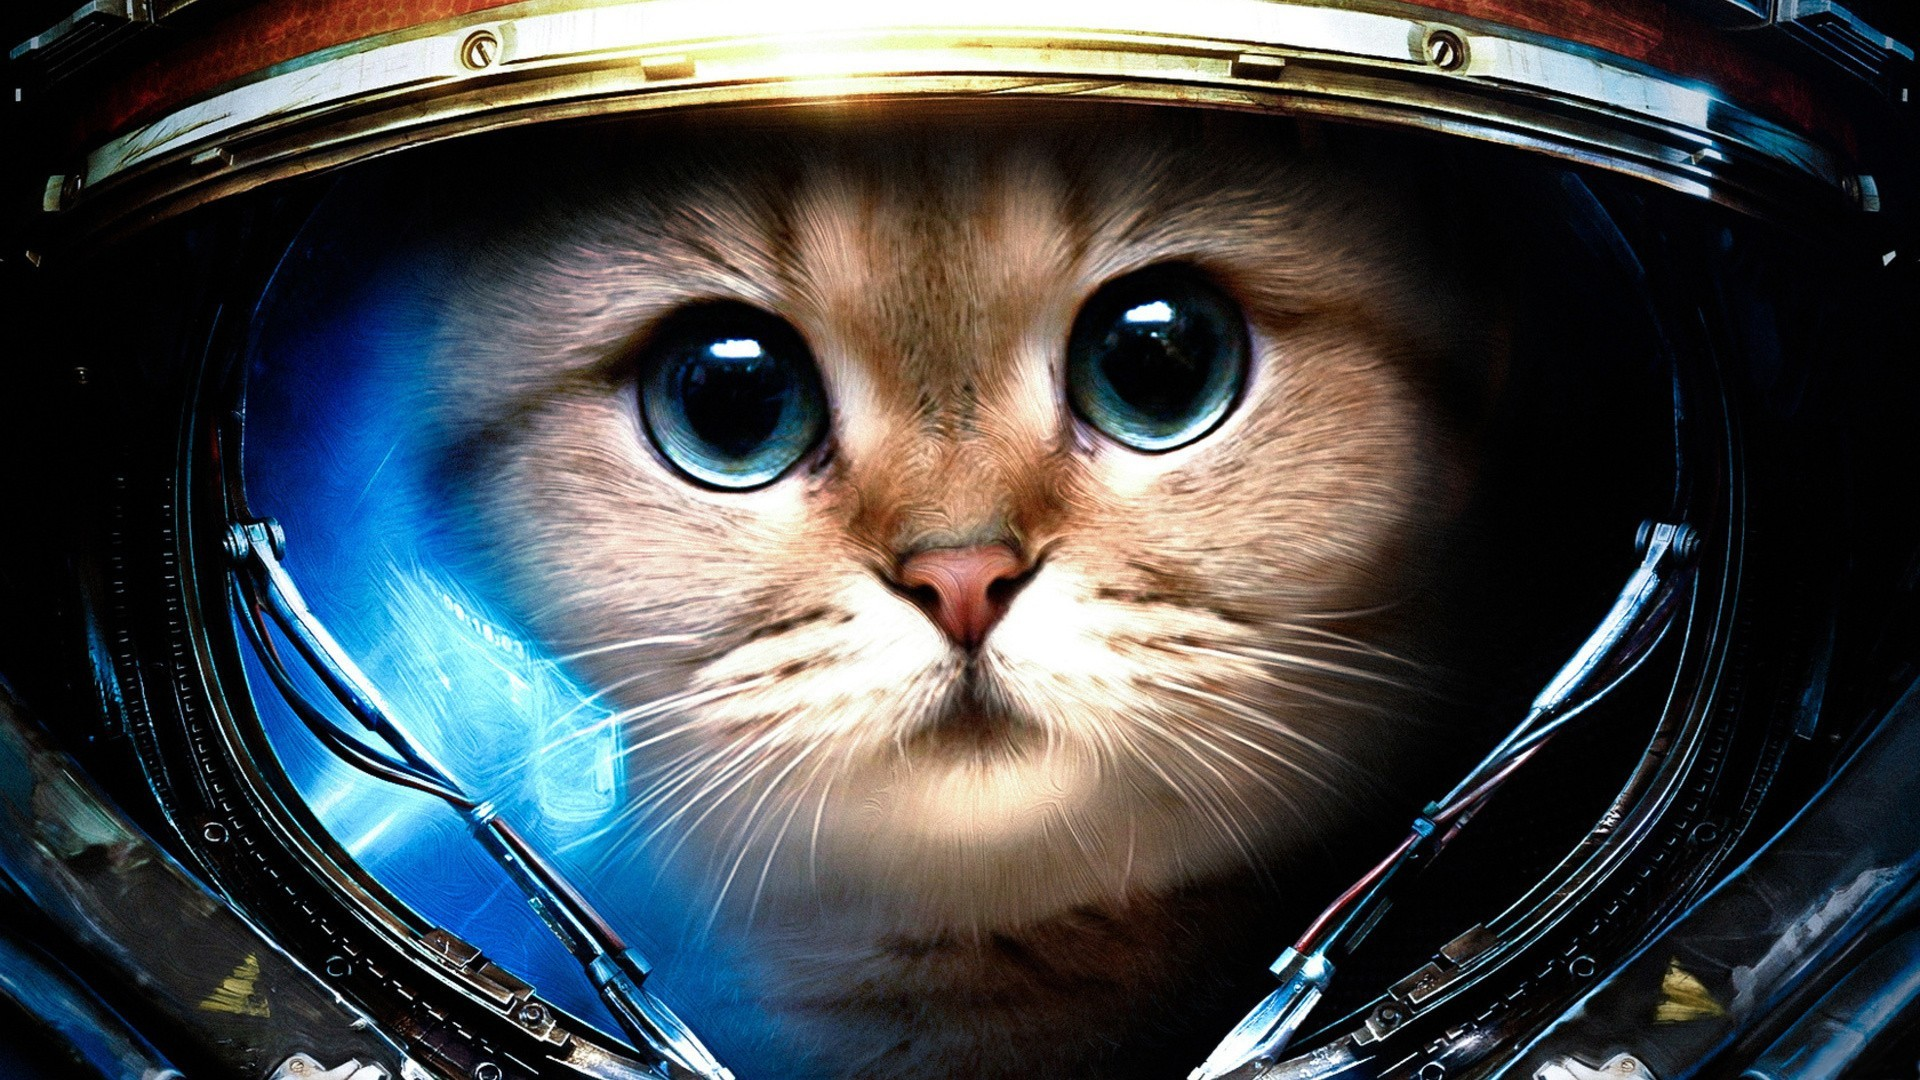 Cat astronaut wallpapers and images – wallpapers, pictures, photos